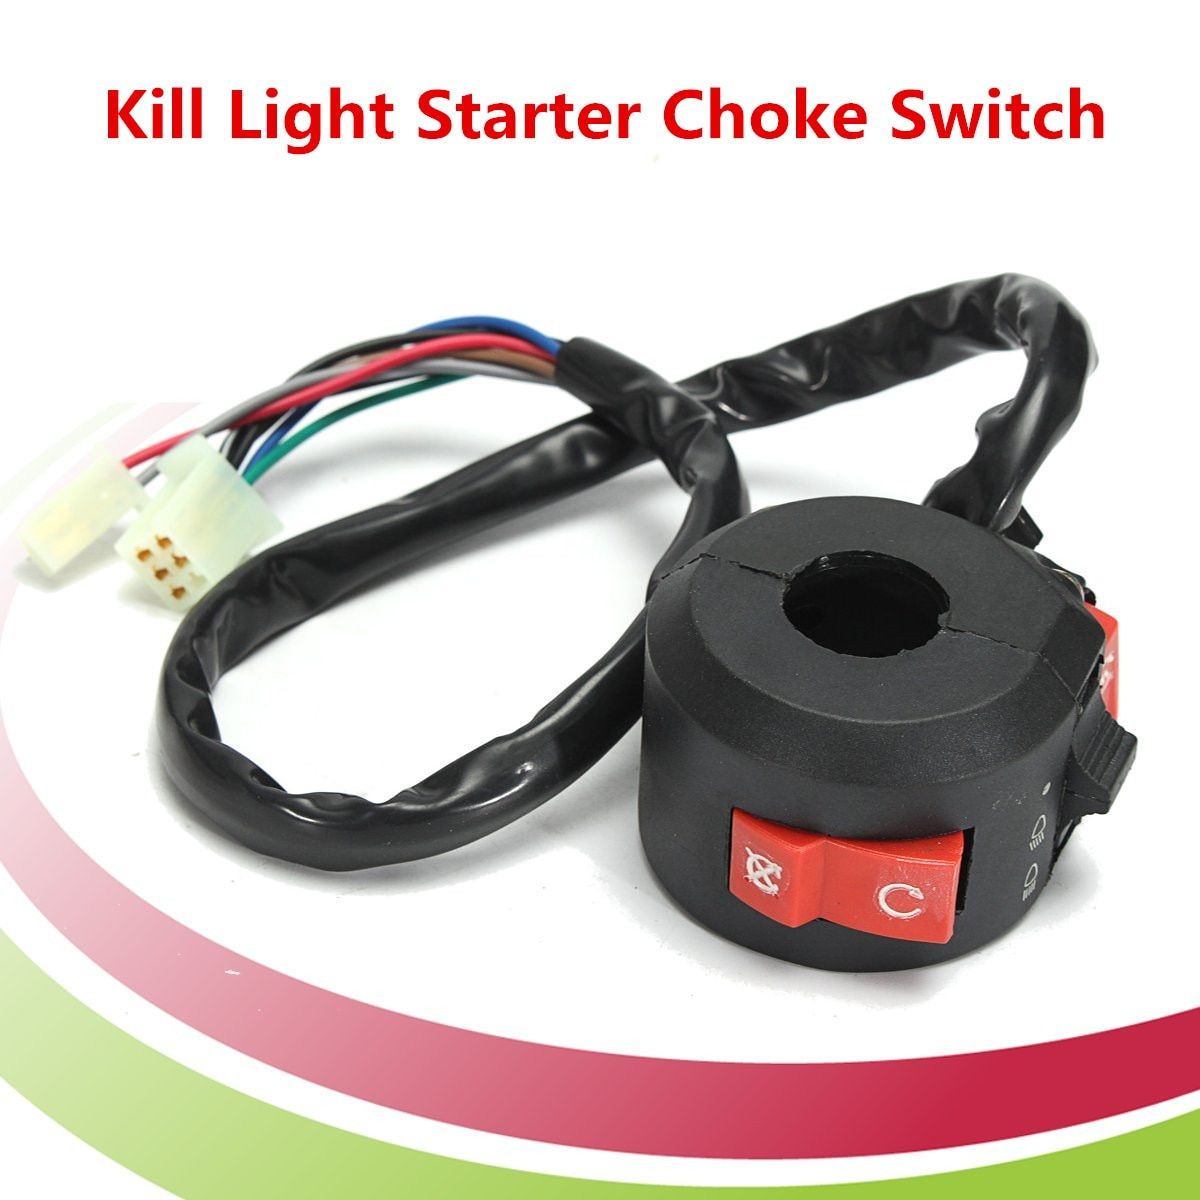 Kill light Starter Choke lever Left Handlebar Handle Control Switch For 90cc 110cc 125cc ATV Quad Portable